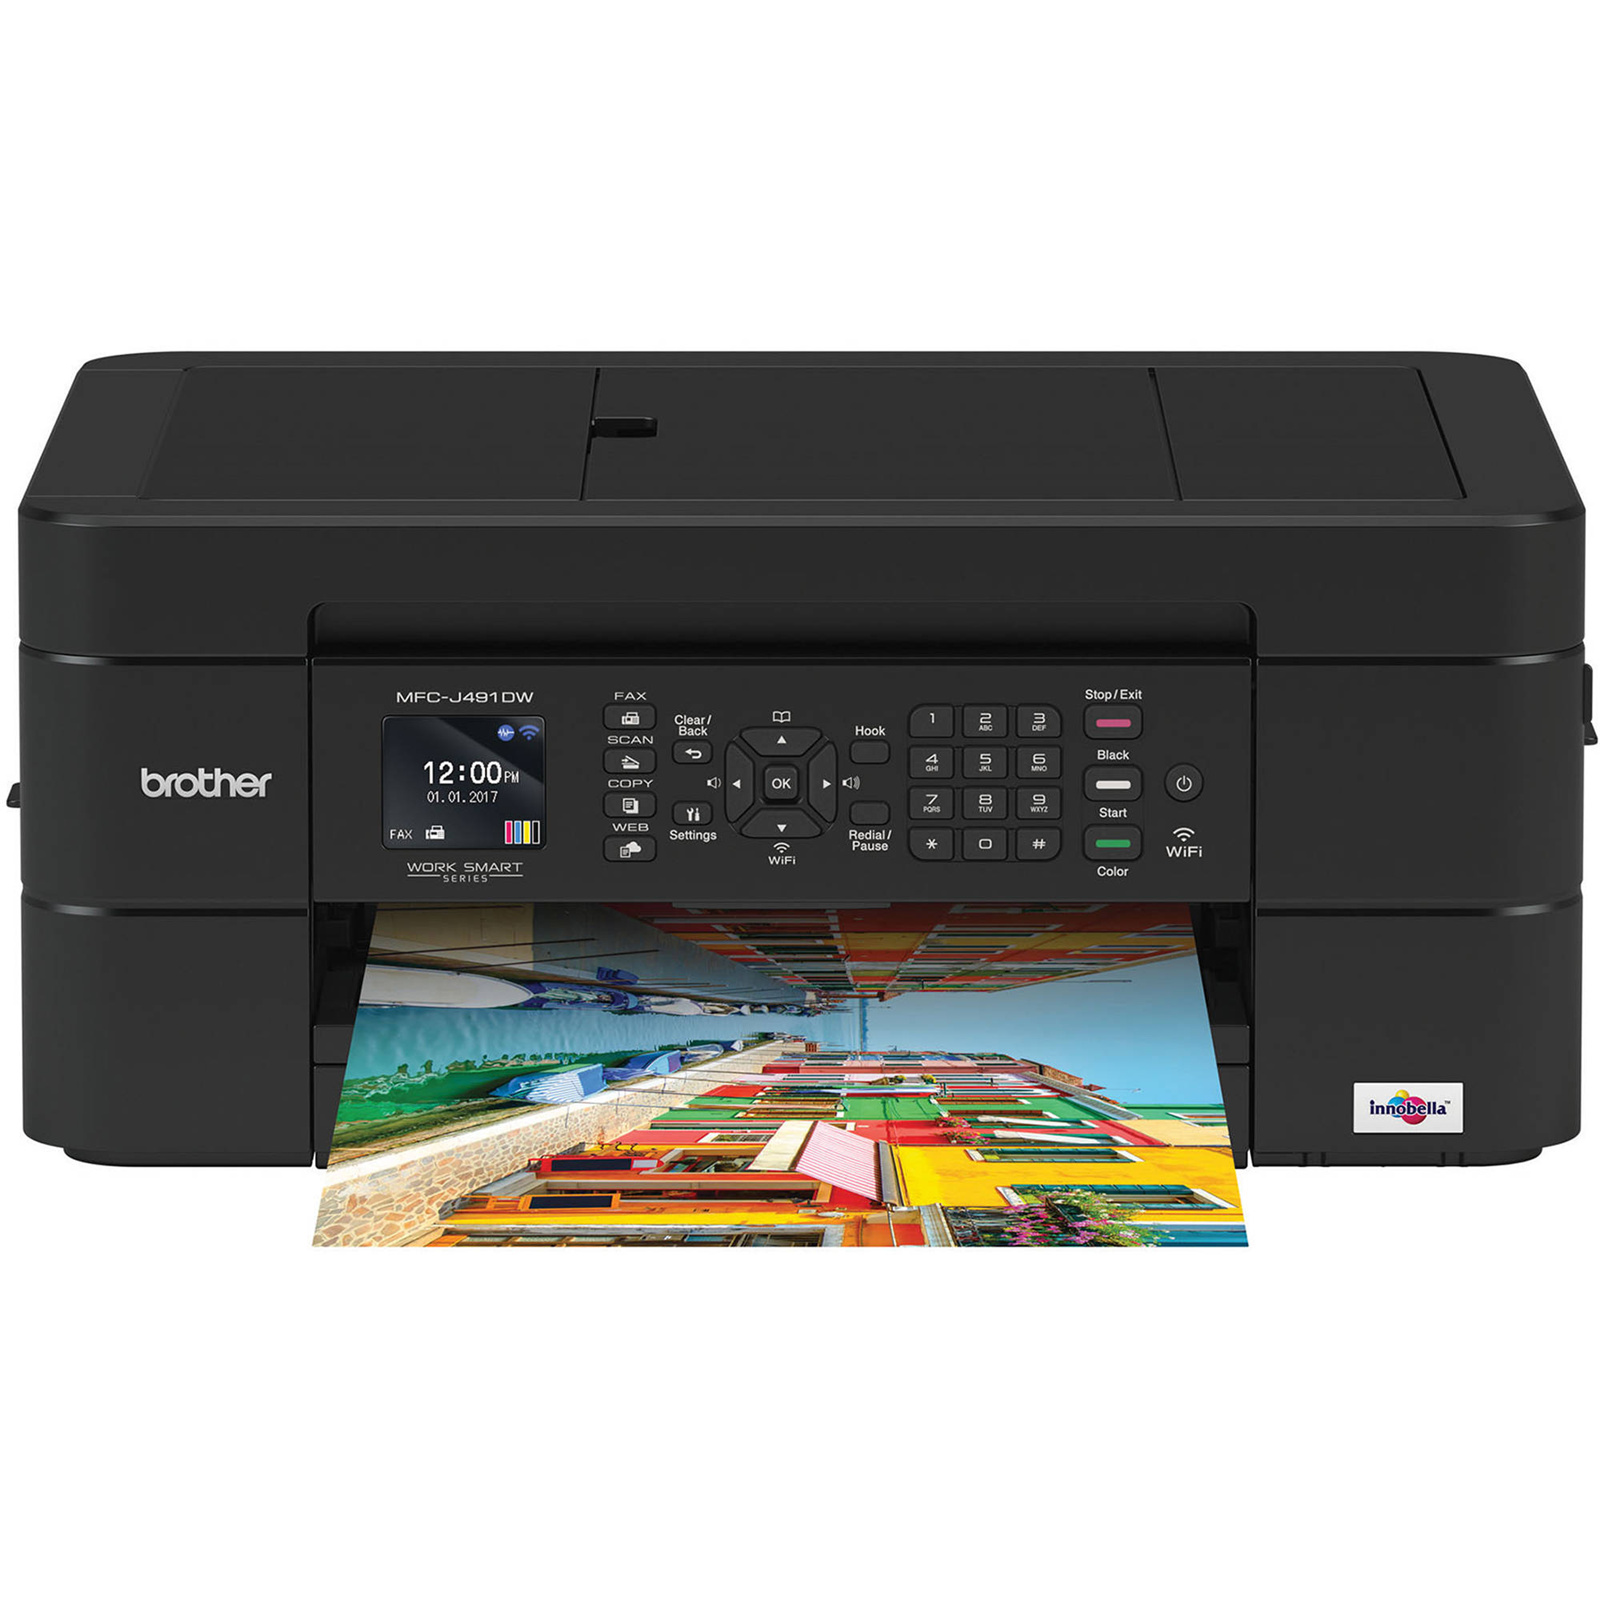 Buy the Brother MFCJ491DW Inkjet MFP Print/Copy/Scan/Fax AirPrint/iPrint     ( MFCJ491DW ) online